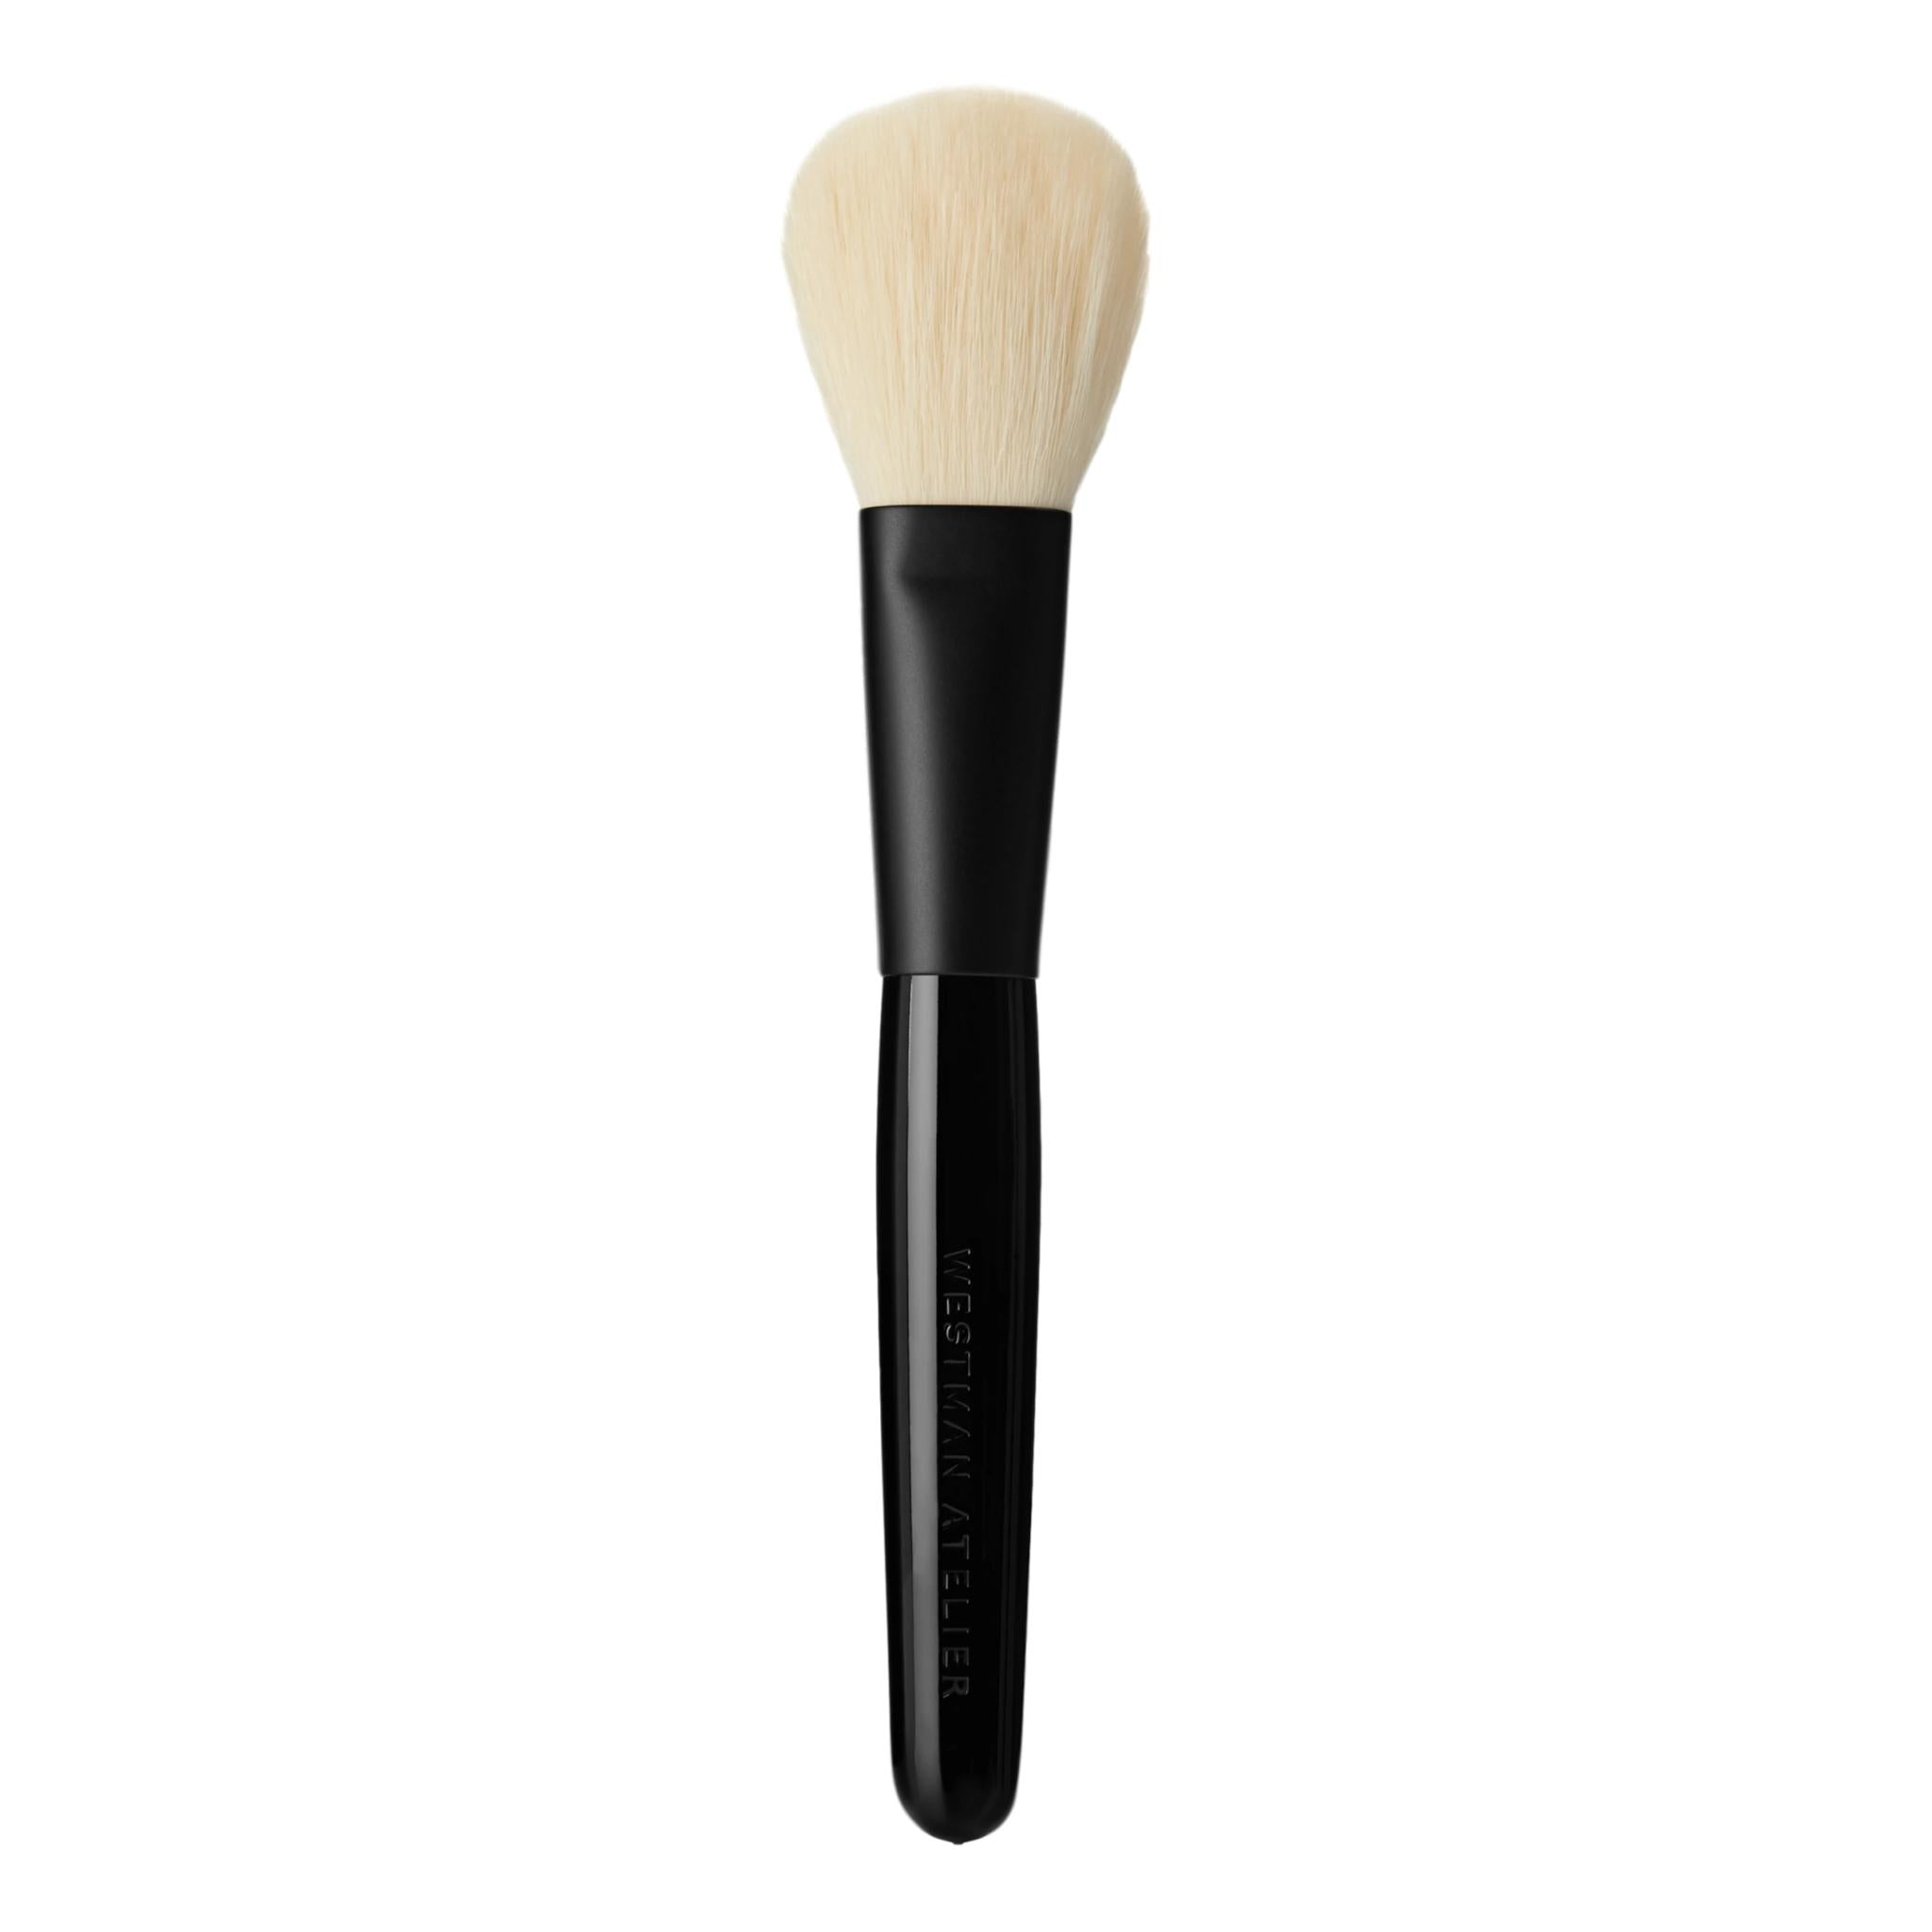 Westman Atelier Powder Brush, powder brush, London Loves Beauty